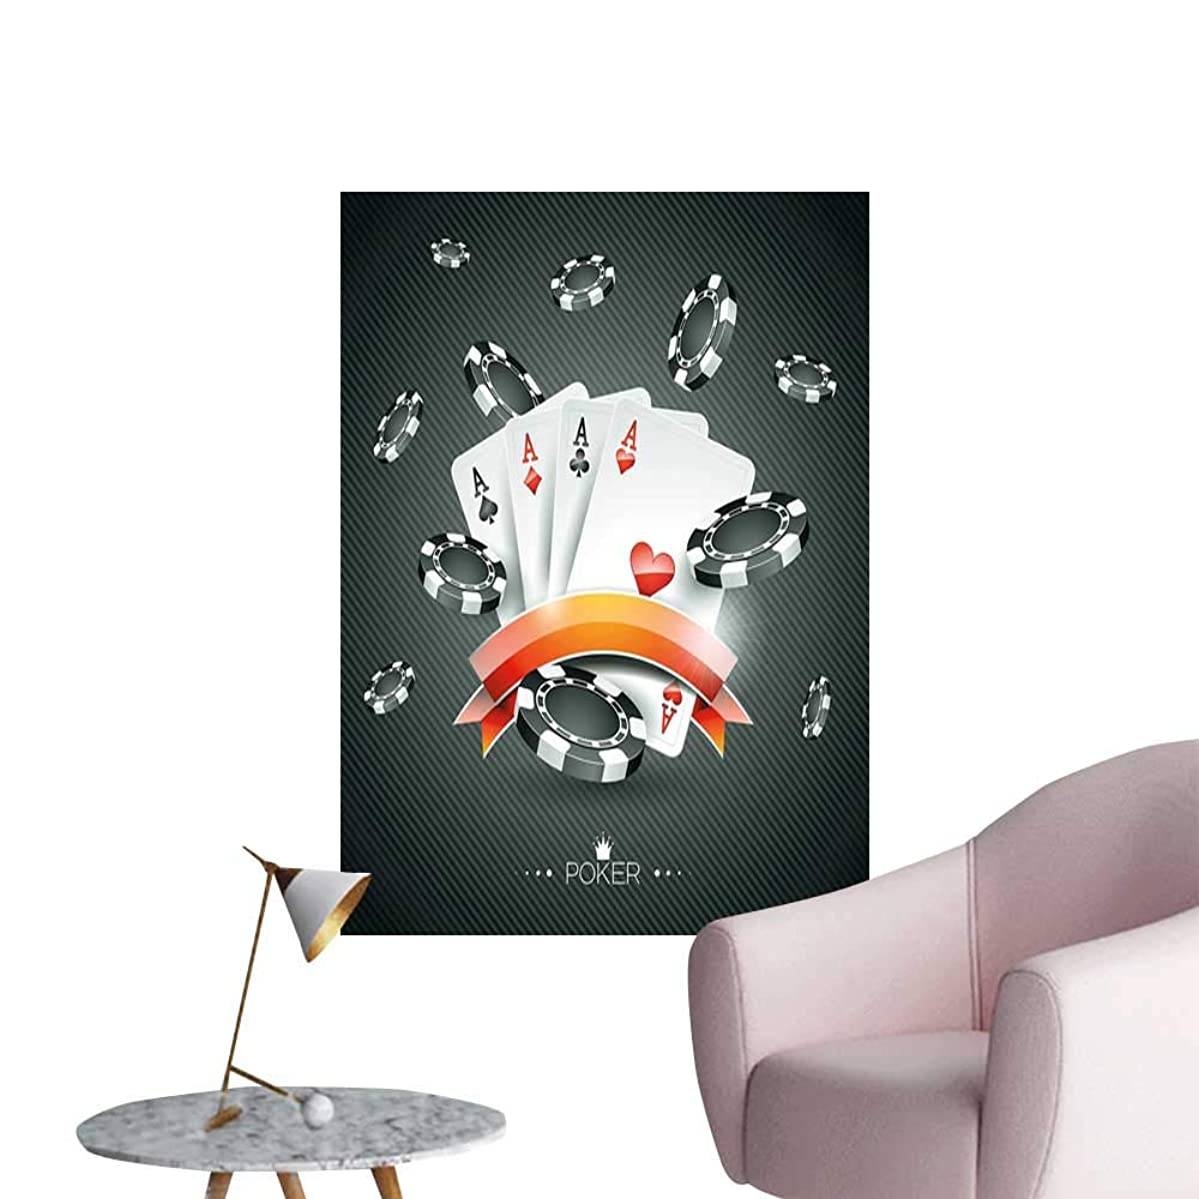 Poker Tournament Decorations Canvas Wall Art Artistic Display Spread Chips with Poker Cards Lifestyle Living Room Wallpaper Black White Red W20 x H28